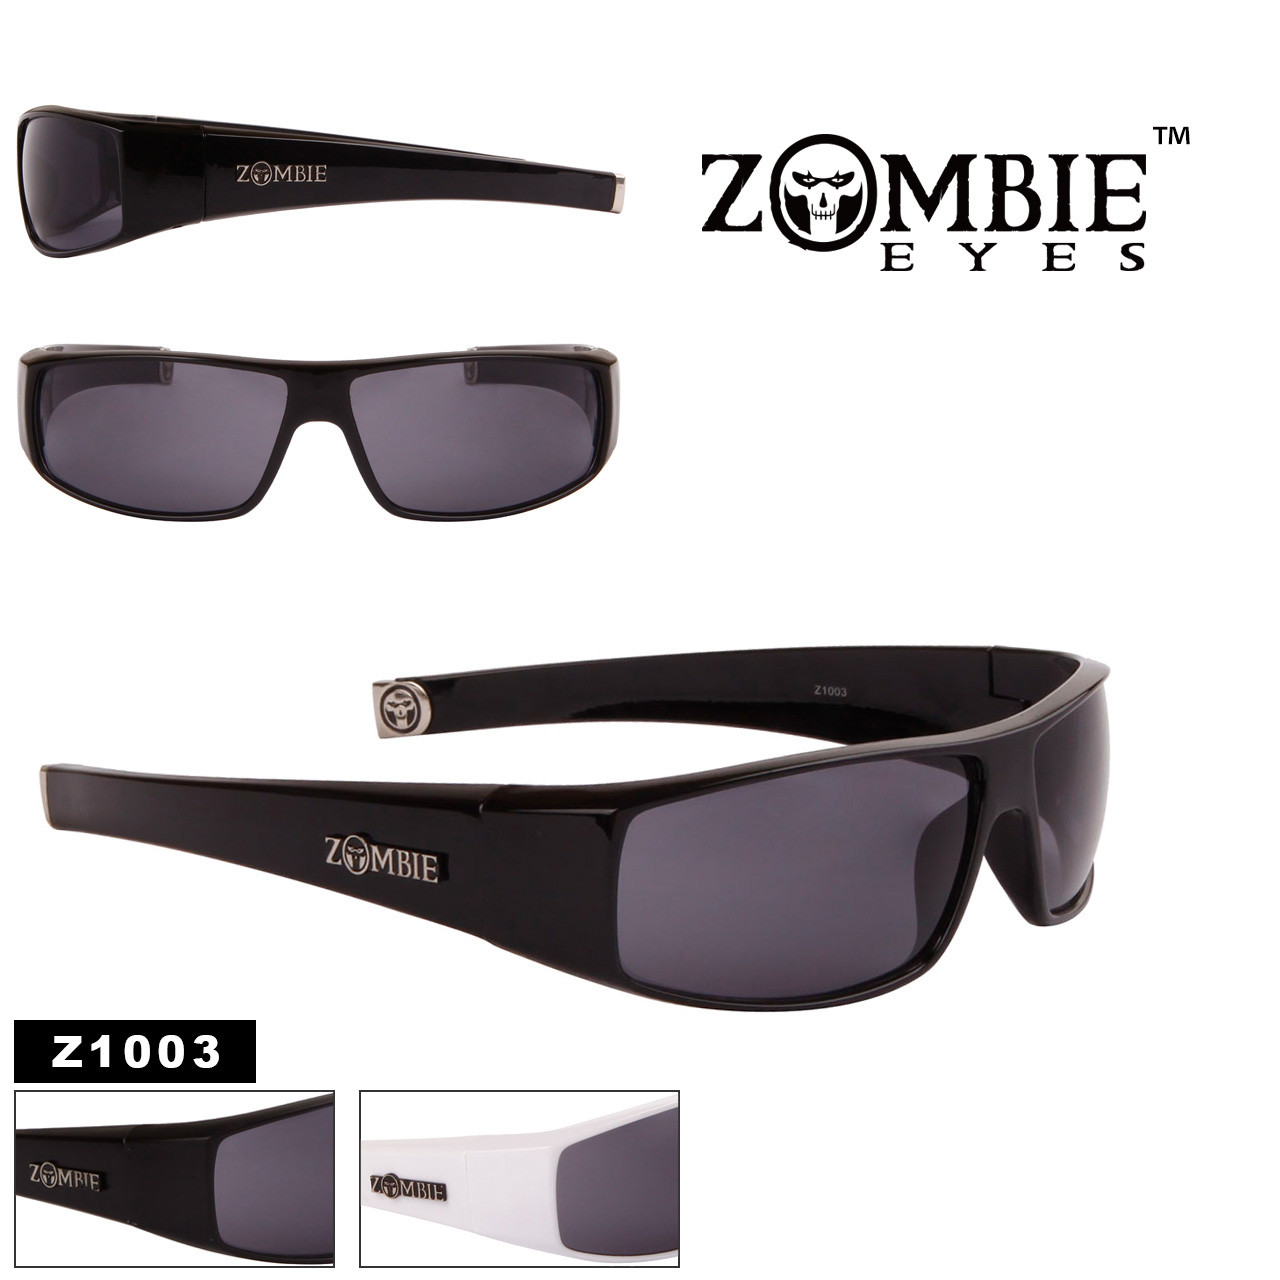 Zombie Eyes™ Men's Sunglasses - Style #Z1003